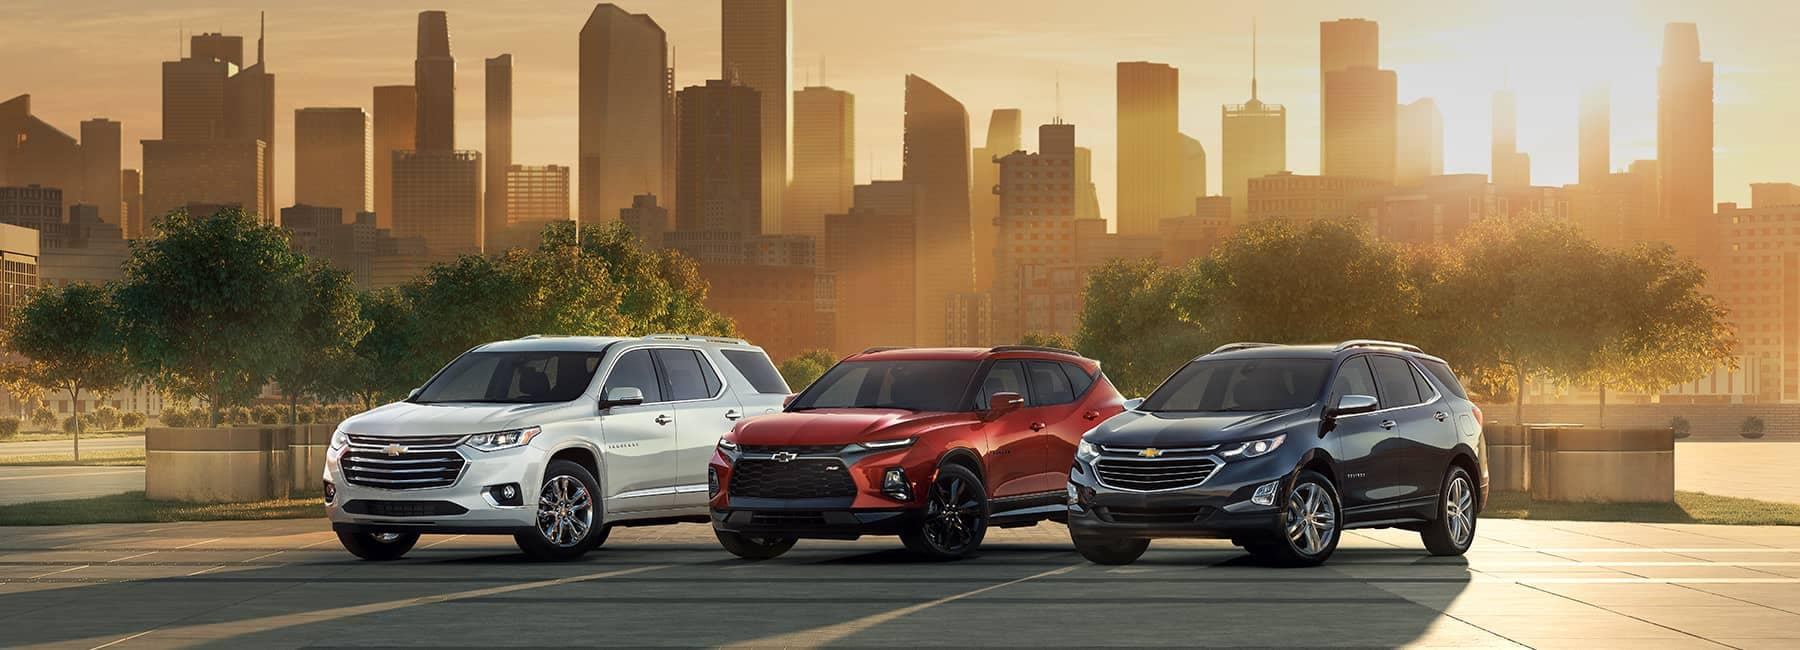 2020 Chevrolet Lineup Against a City Skyline at Sunset